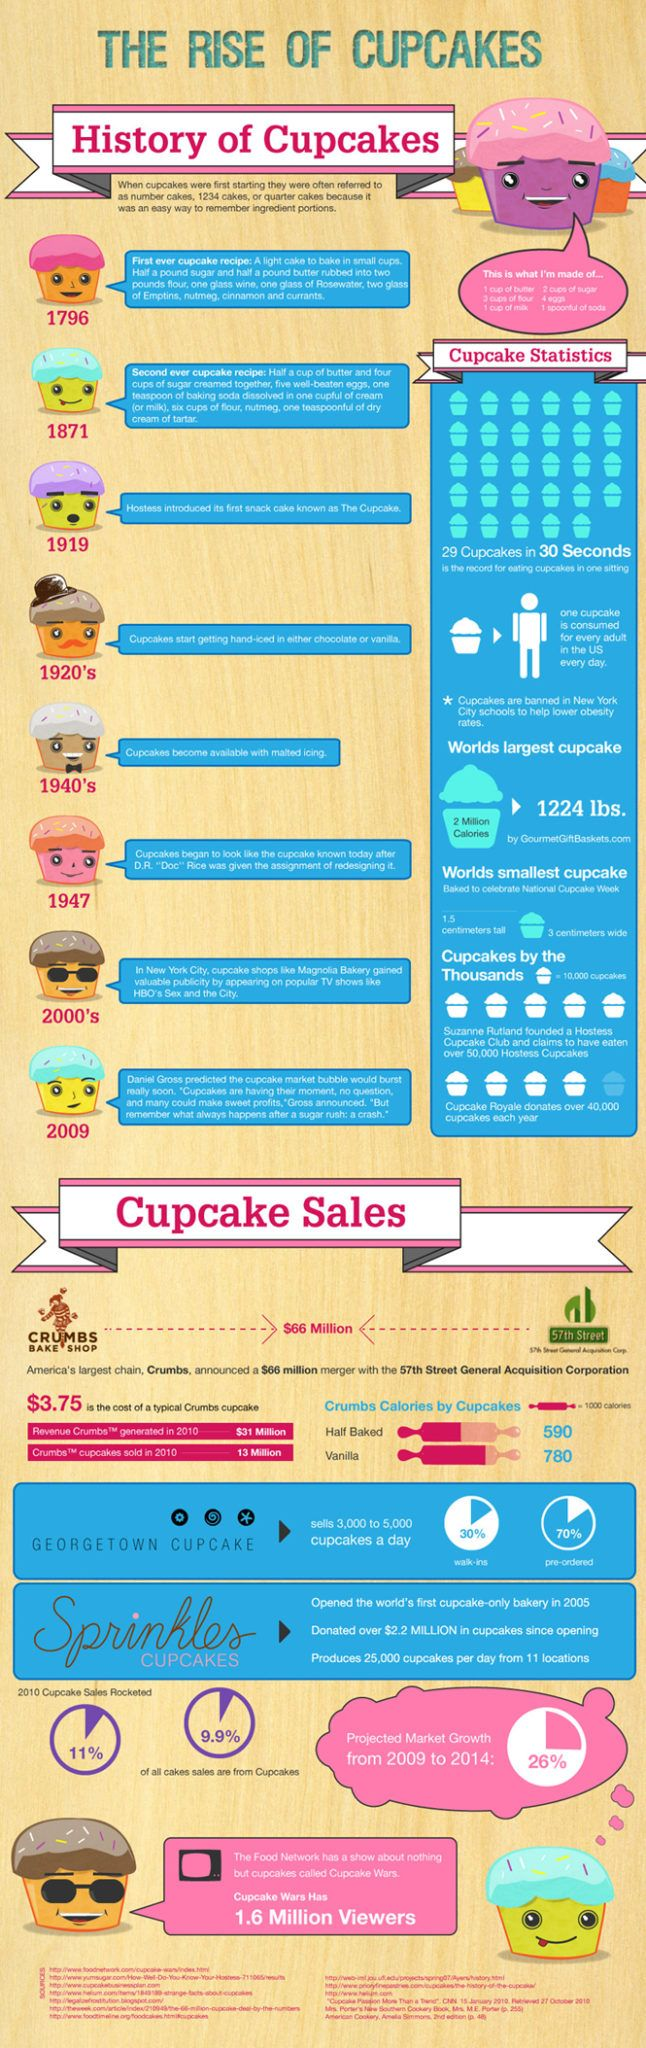 cupcakes-history-infographic